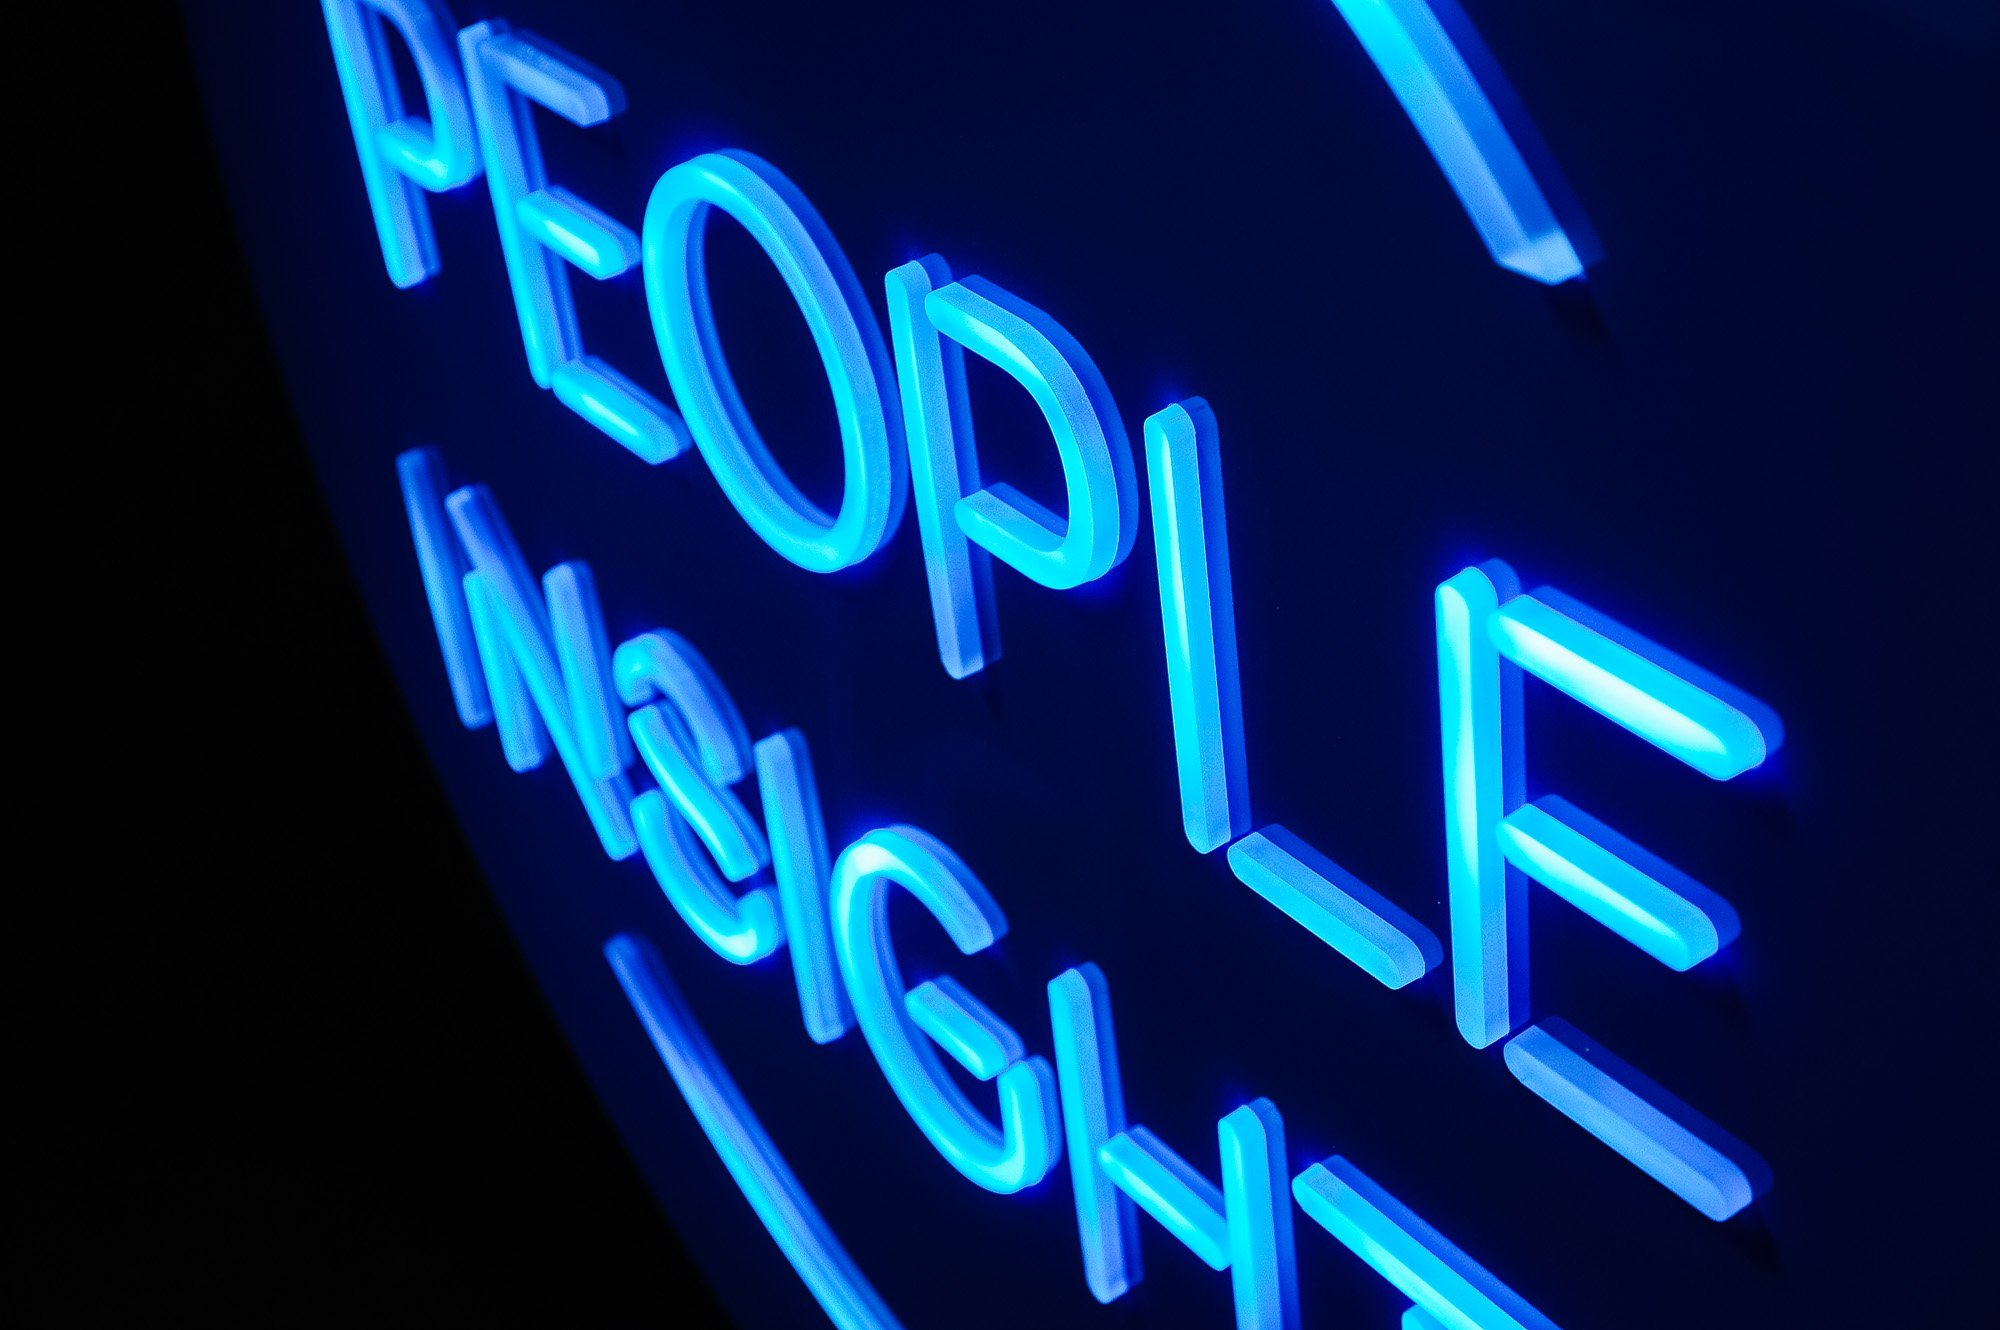 Blue neon-style team sign for Facebook, an American online social media and social networking service company.